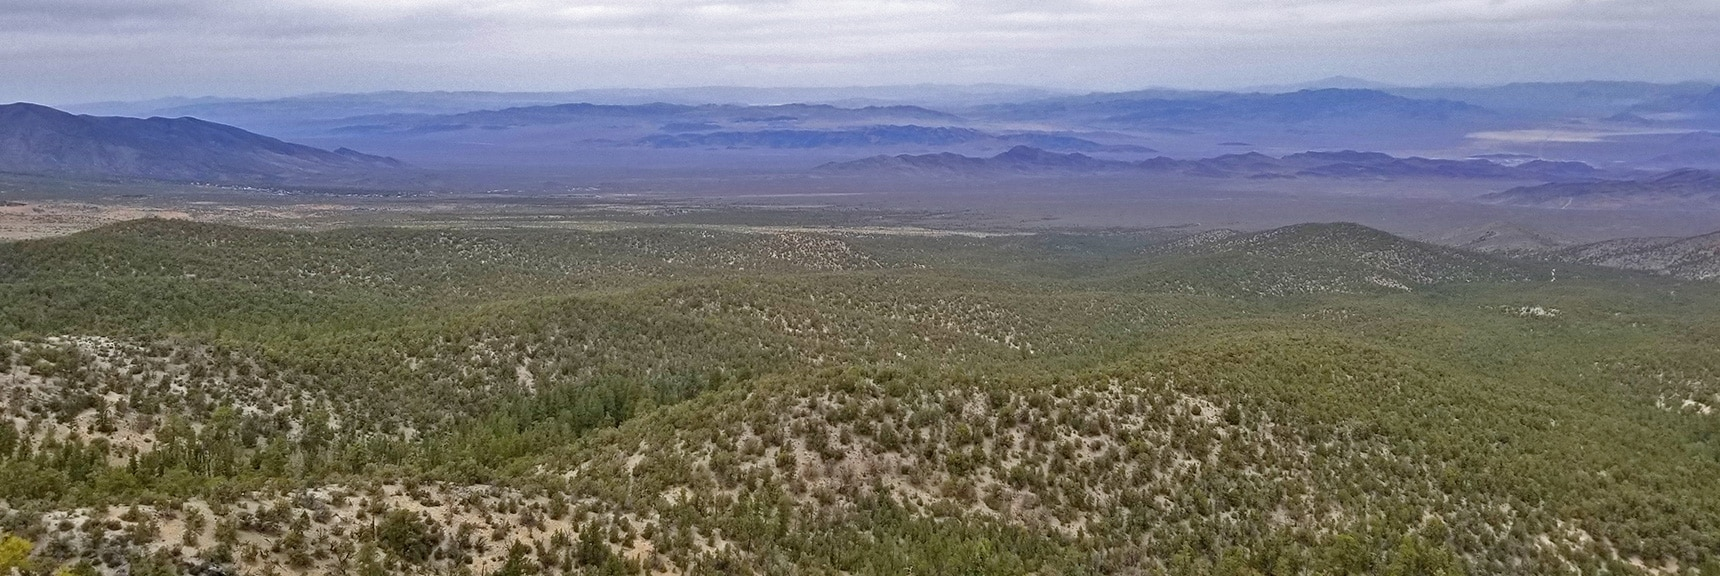 Cold Springs Town and Desert Valley Viewed from 9,235ft High Point Bluff   Sawmill Trail to McFarland Peak   Spring Mountains, Nevada